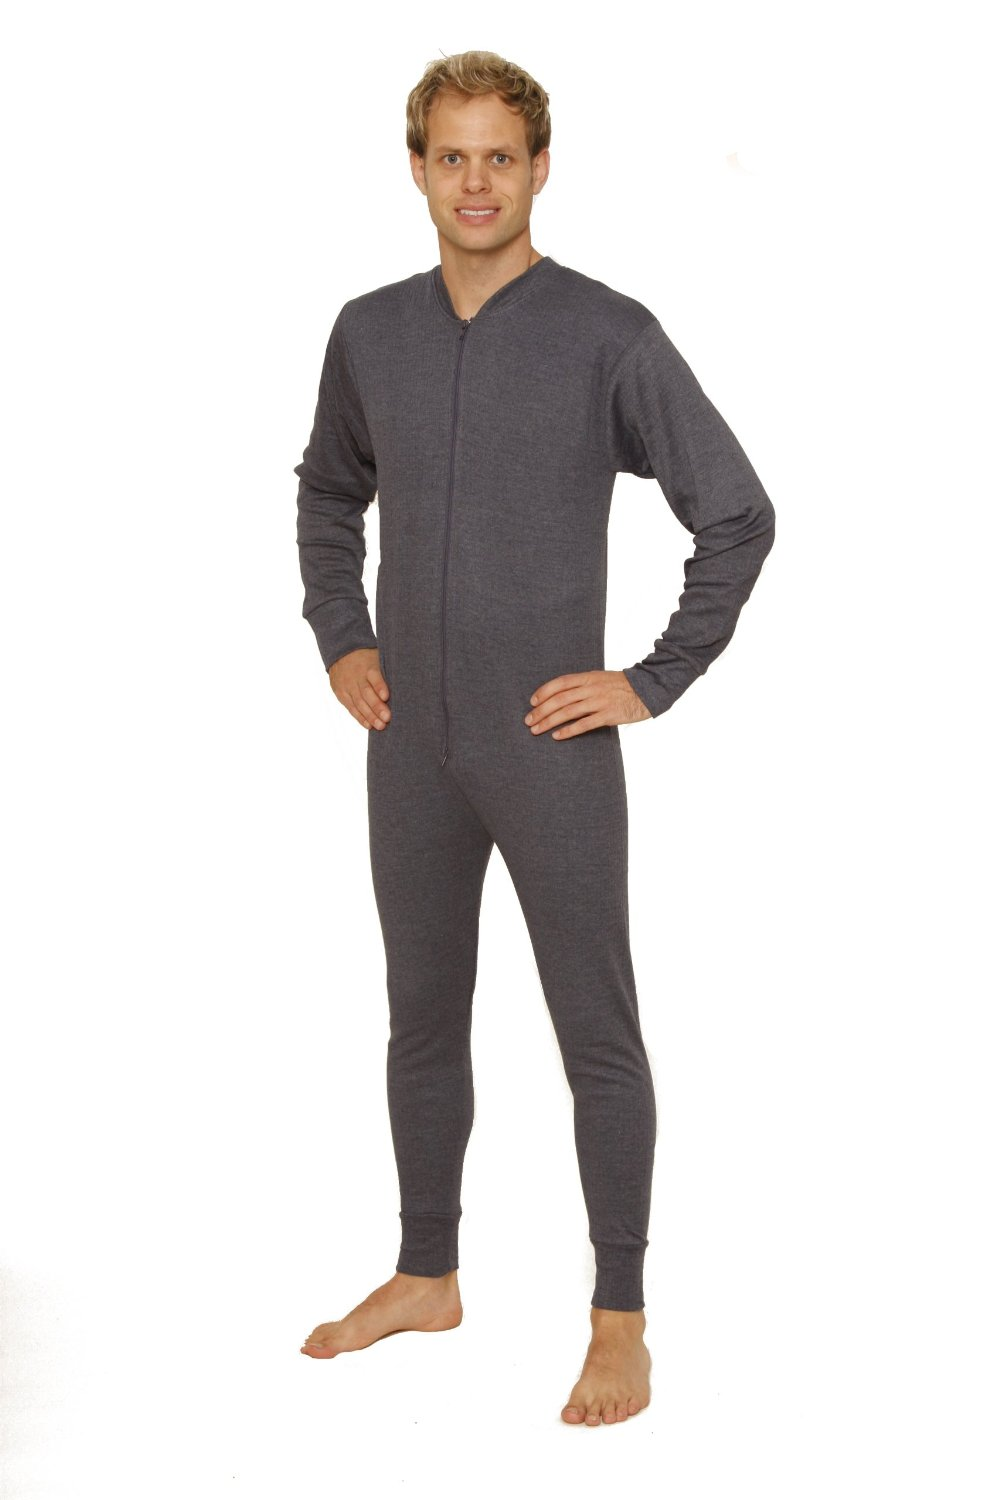 Fight the Chill with Premium Thermal Underwear for Men. Shop this collection of men's thermal underwear from DICK'S Sporting Goods and find a great base layer that will allow you to enjoy the outdoors all year round.